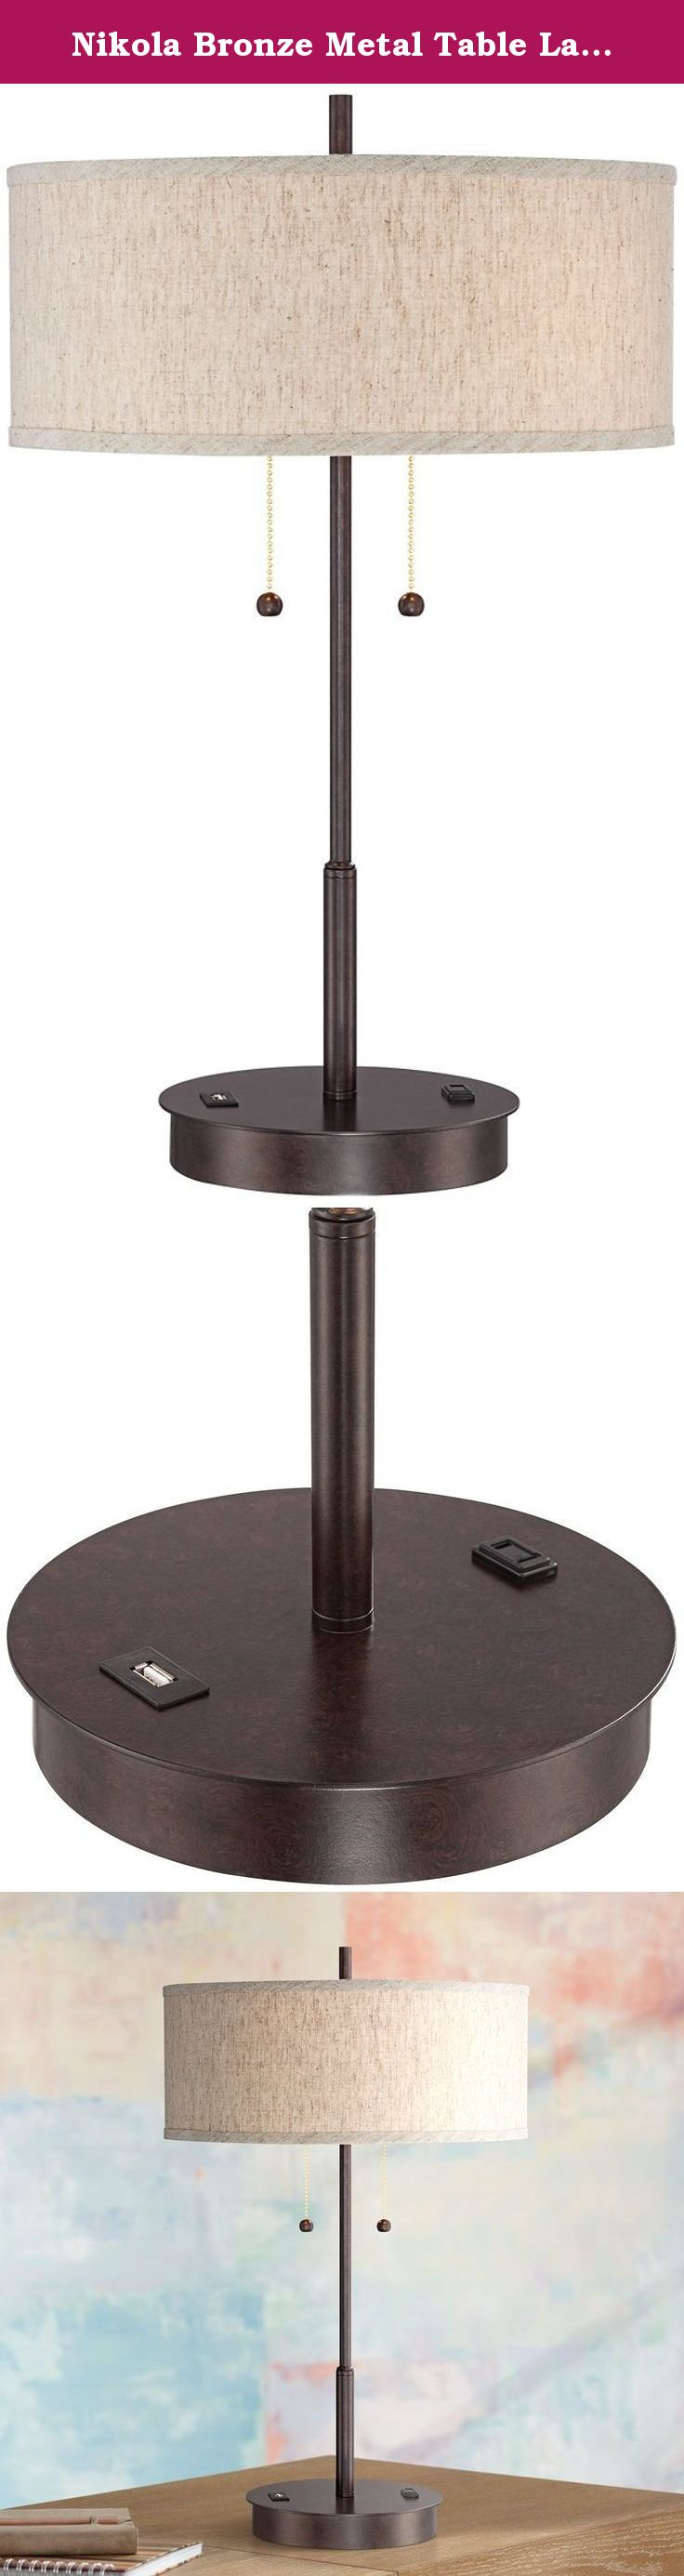 Nikola bronze metal table lamp with usb port perfect for a side nikola bronze metal table lamp with usb port perfect for a side table or end geotapseo Gallery